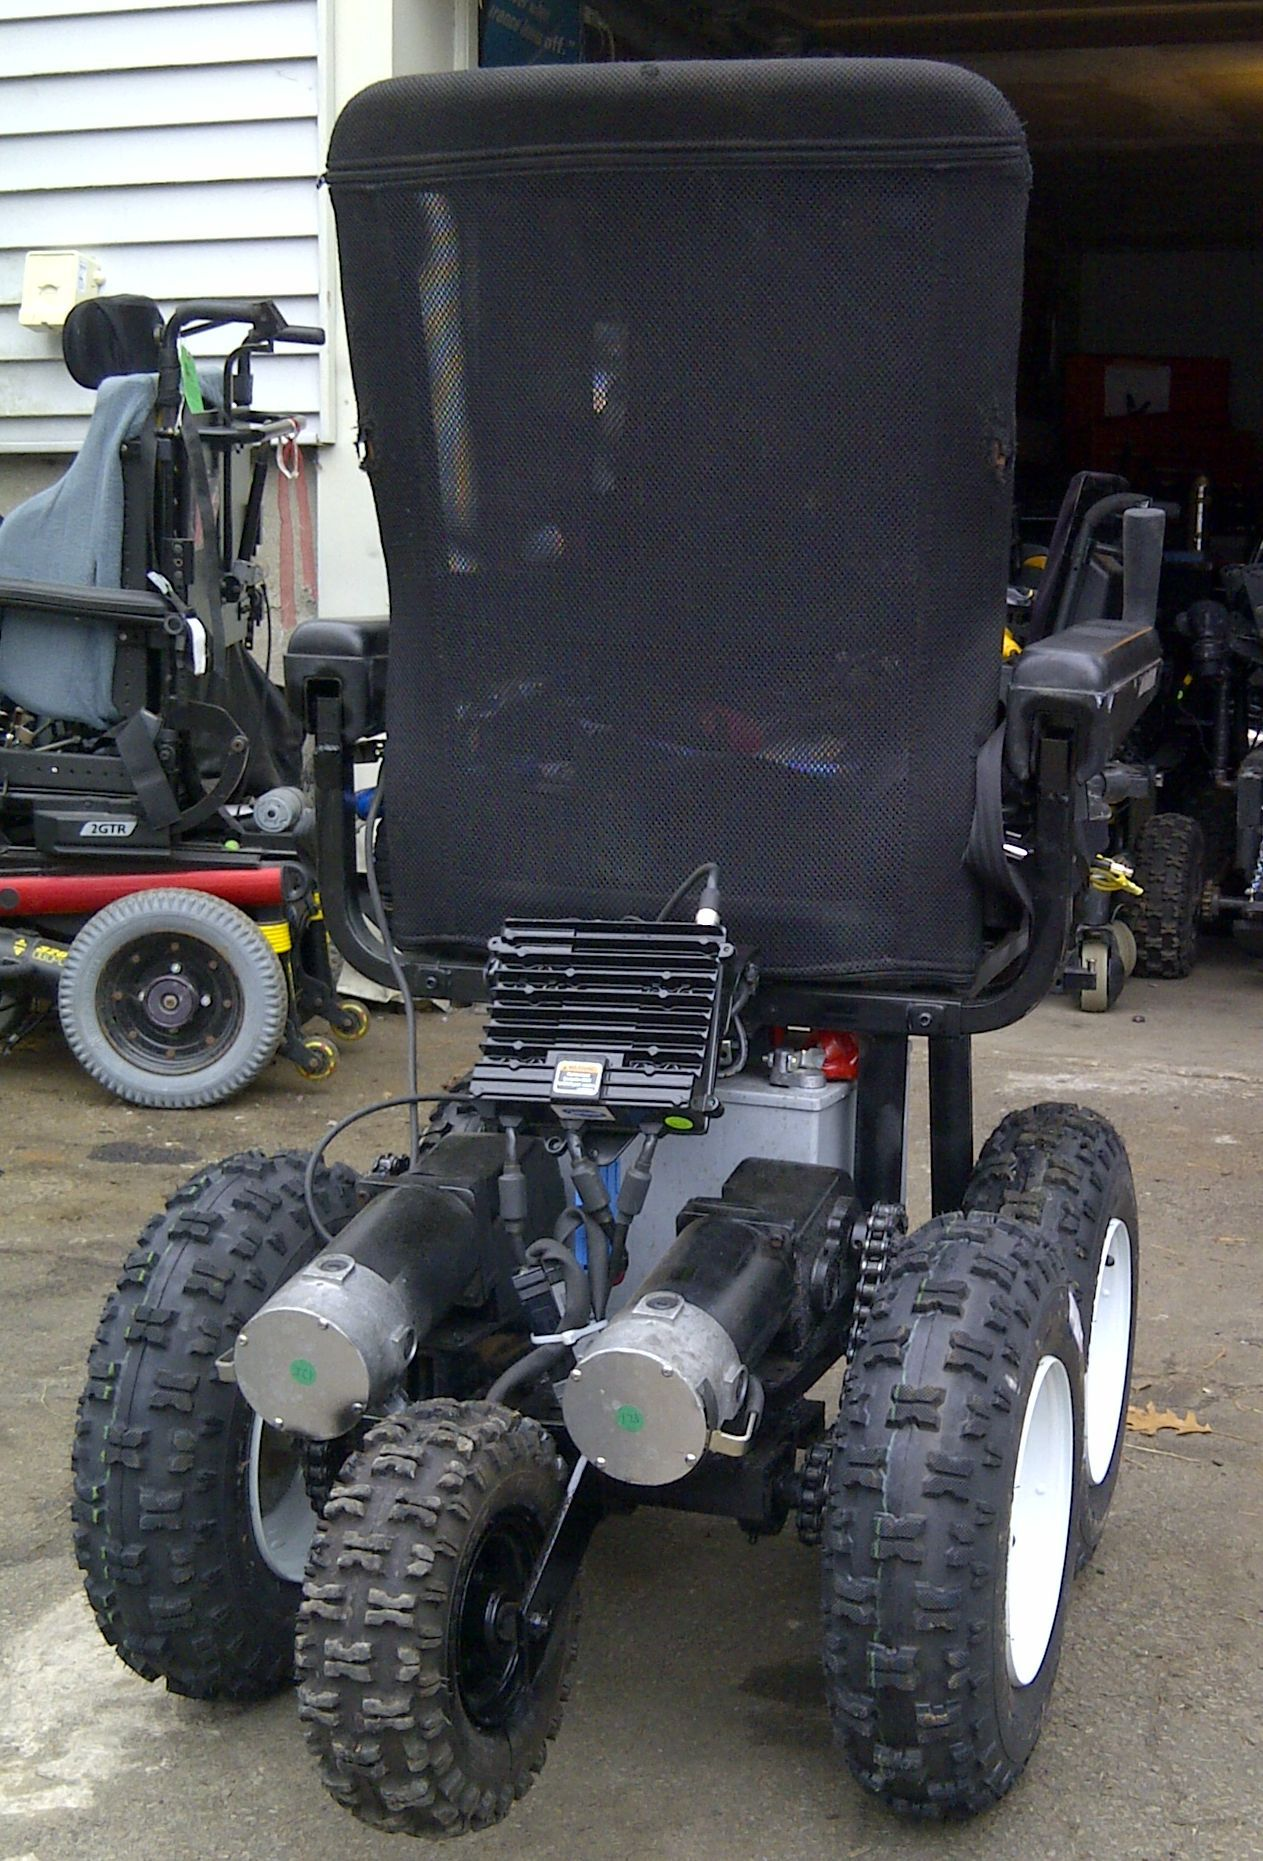 4x4 Wheelchair Built By The Wheelchairconversions Com